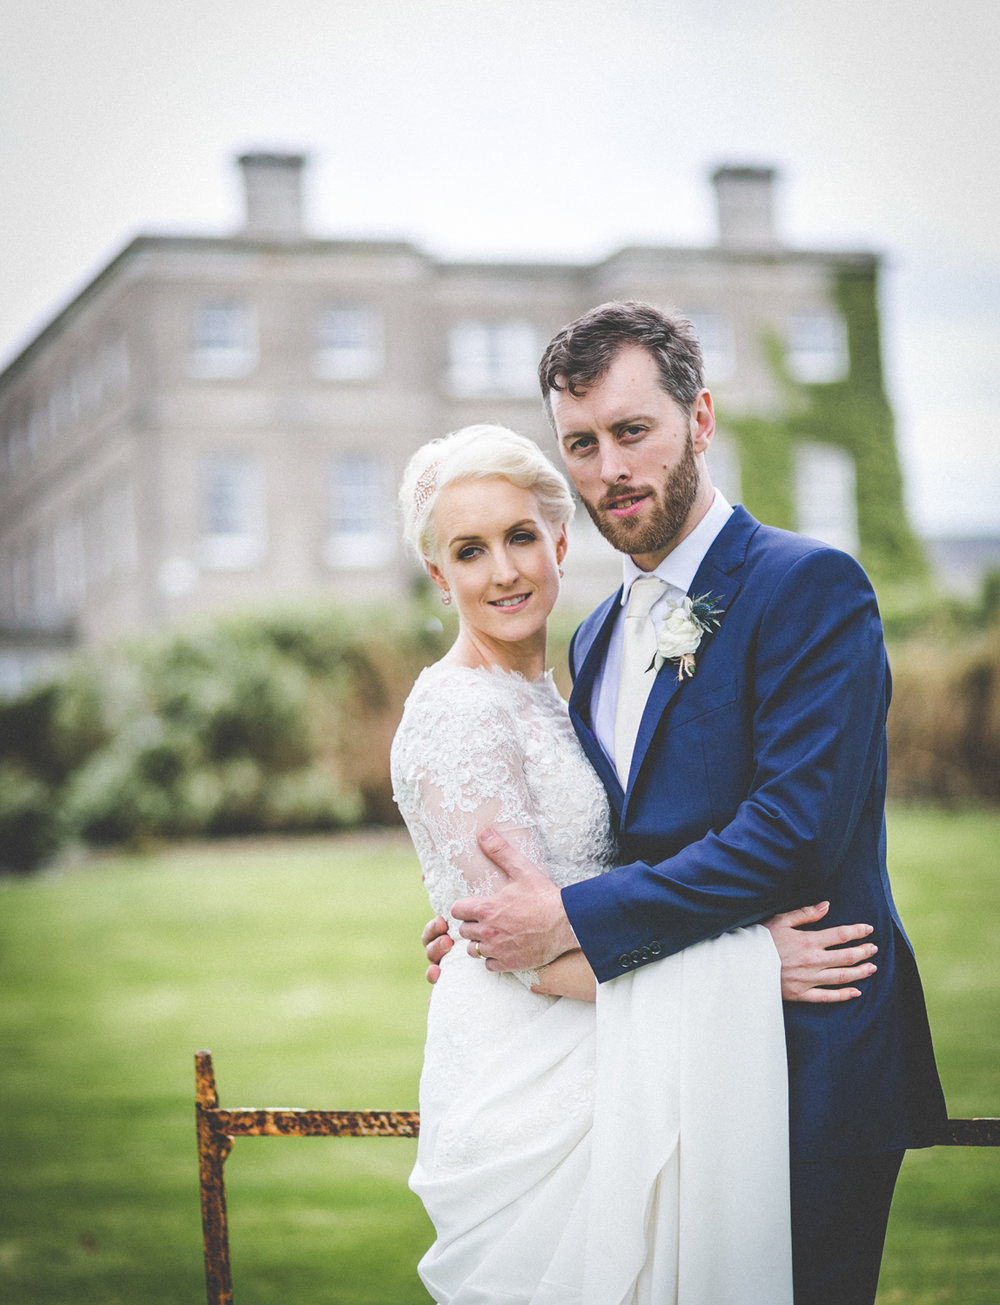 Horetown House wedding Dublin alternative wedding photographer093.jpg